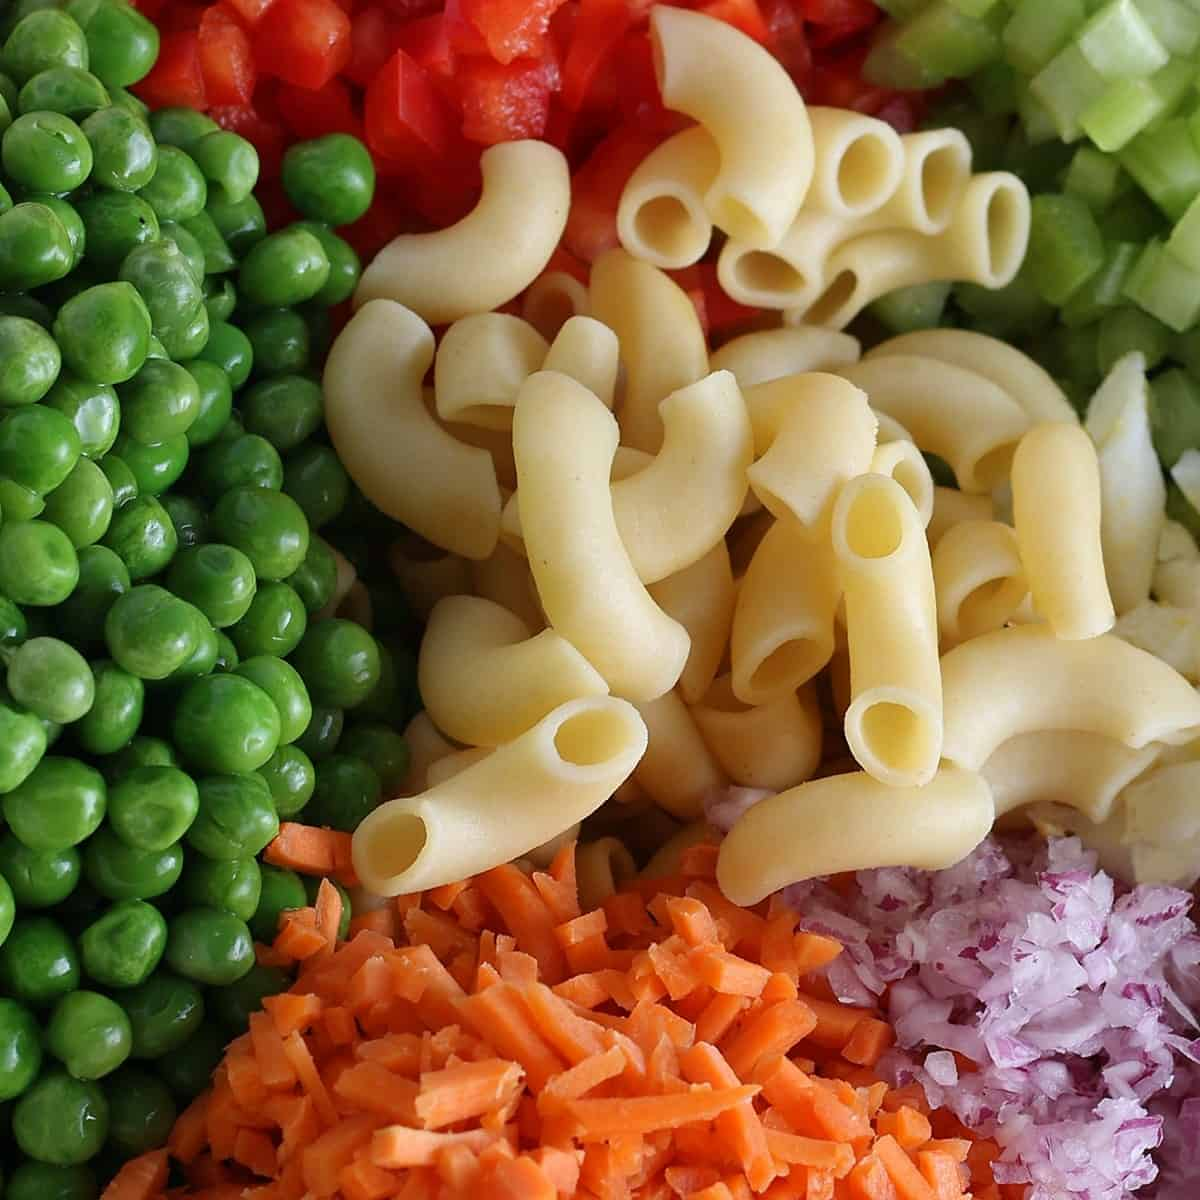 A very closeup photo of prepared veggies with cooked macaroni in the center.